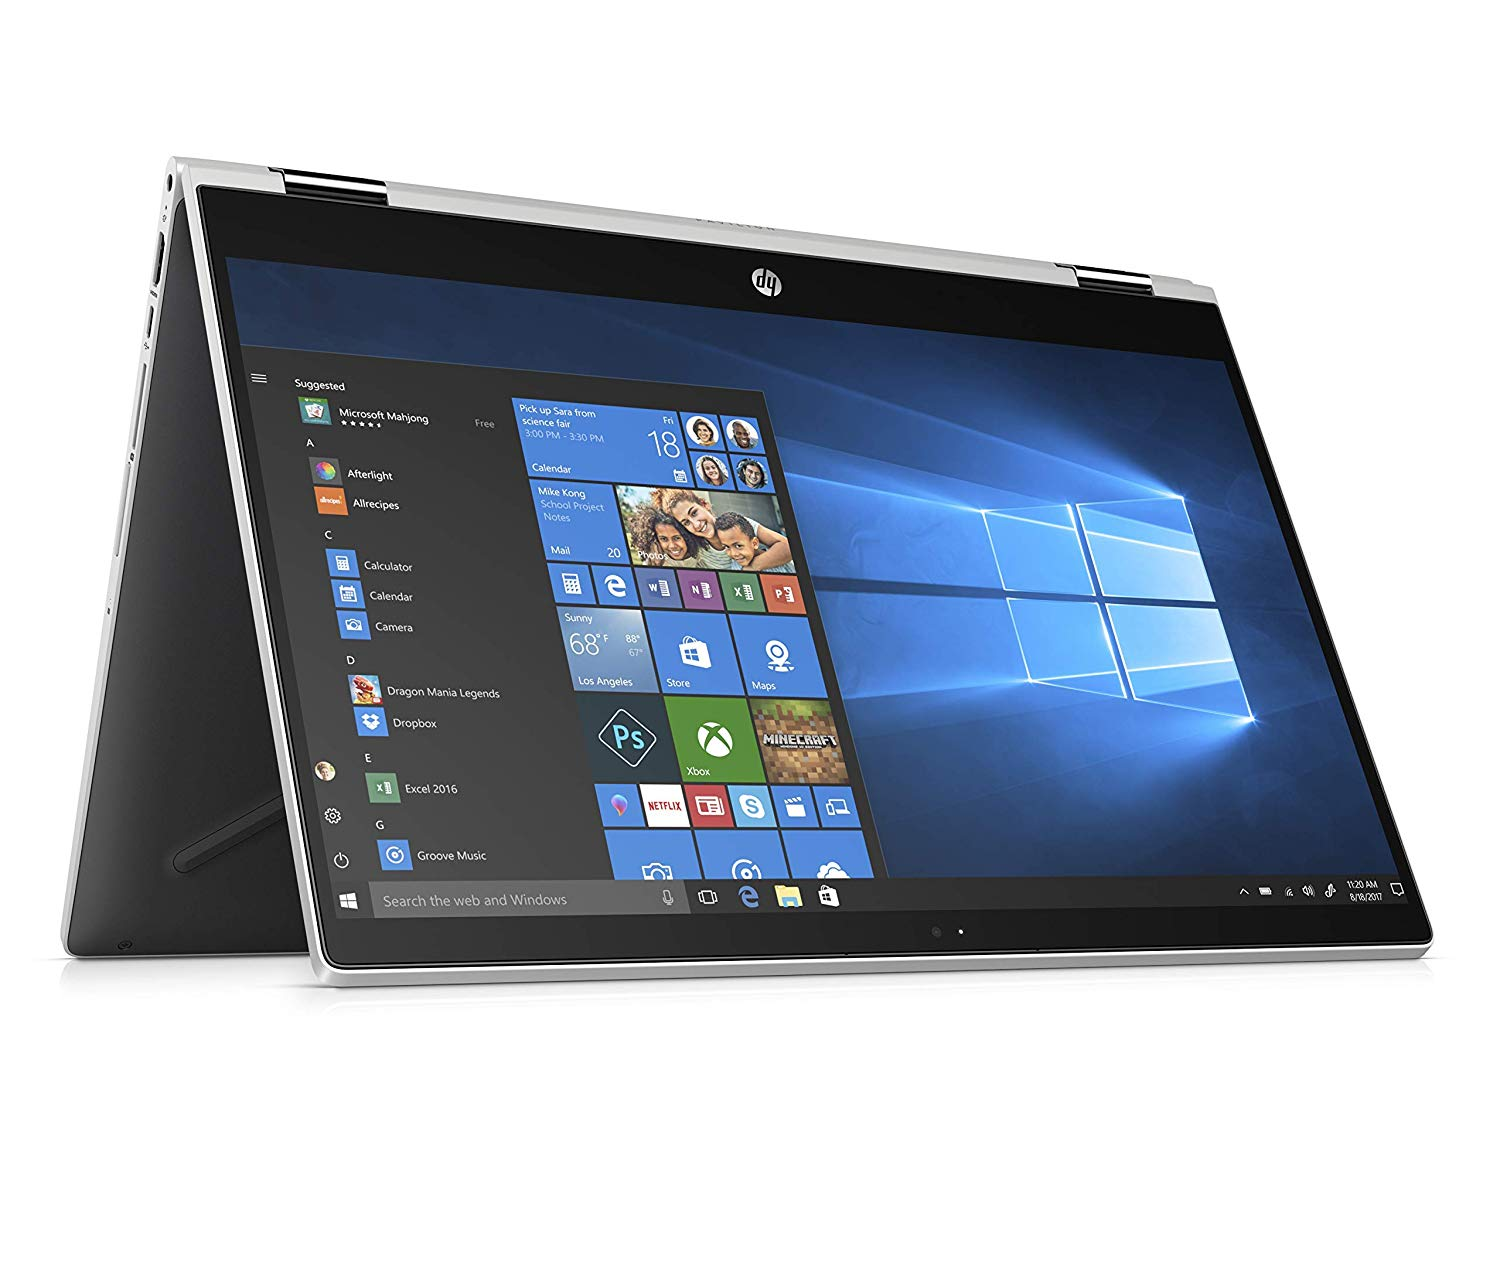 "HP Pavilion X360 15.6"" Full HD Convertible Touchscreen 2-in-1 Laptop Core i3-8130U Up to 3.4GHz 20GB (4GB DDR4+16GB Optane) Memory 1TB HDD HP Digital Pen Windows 10"